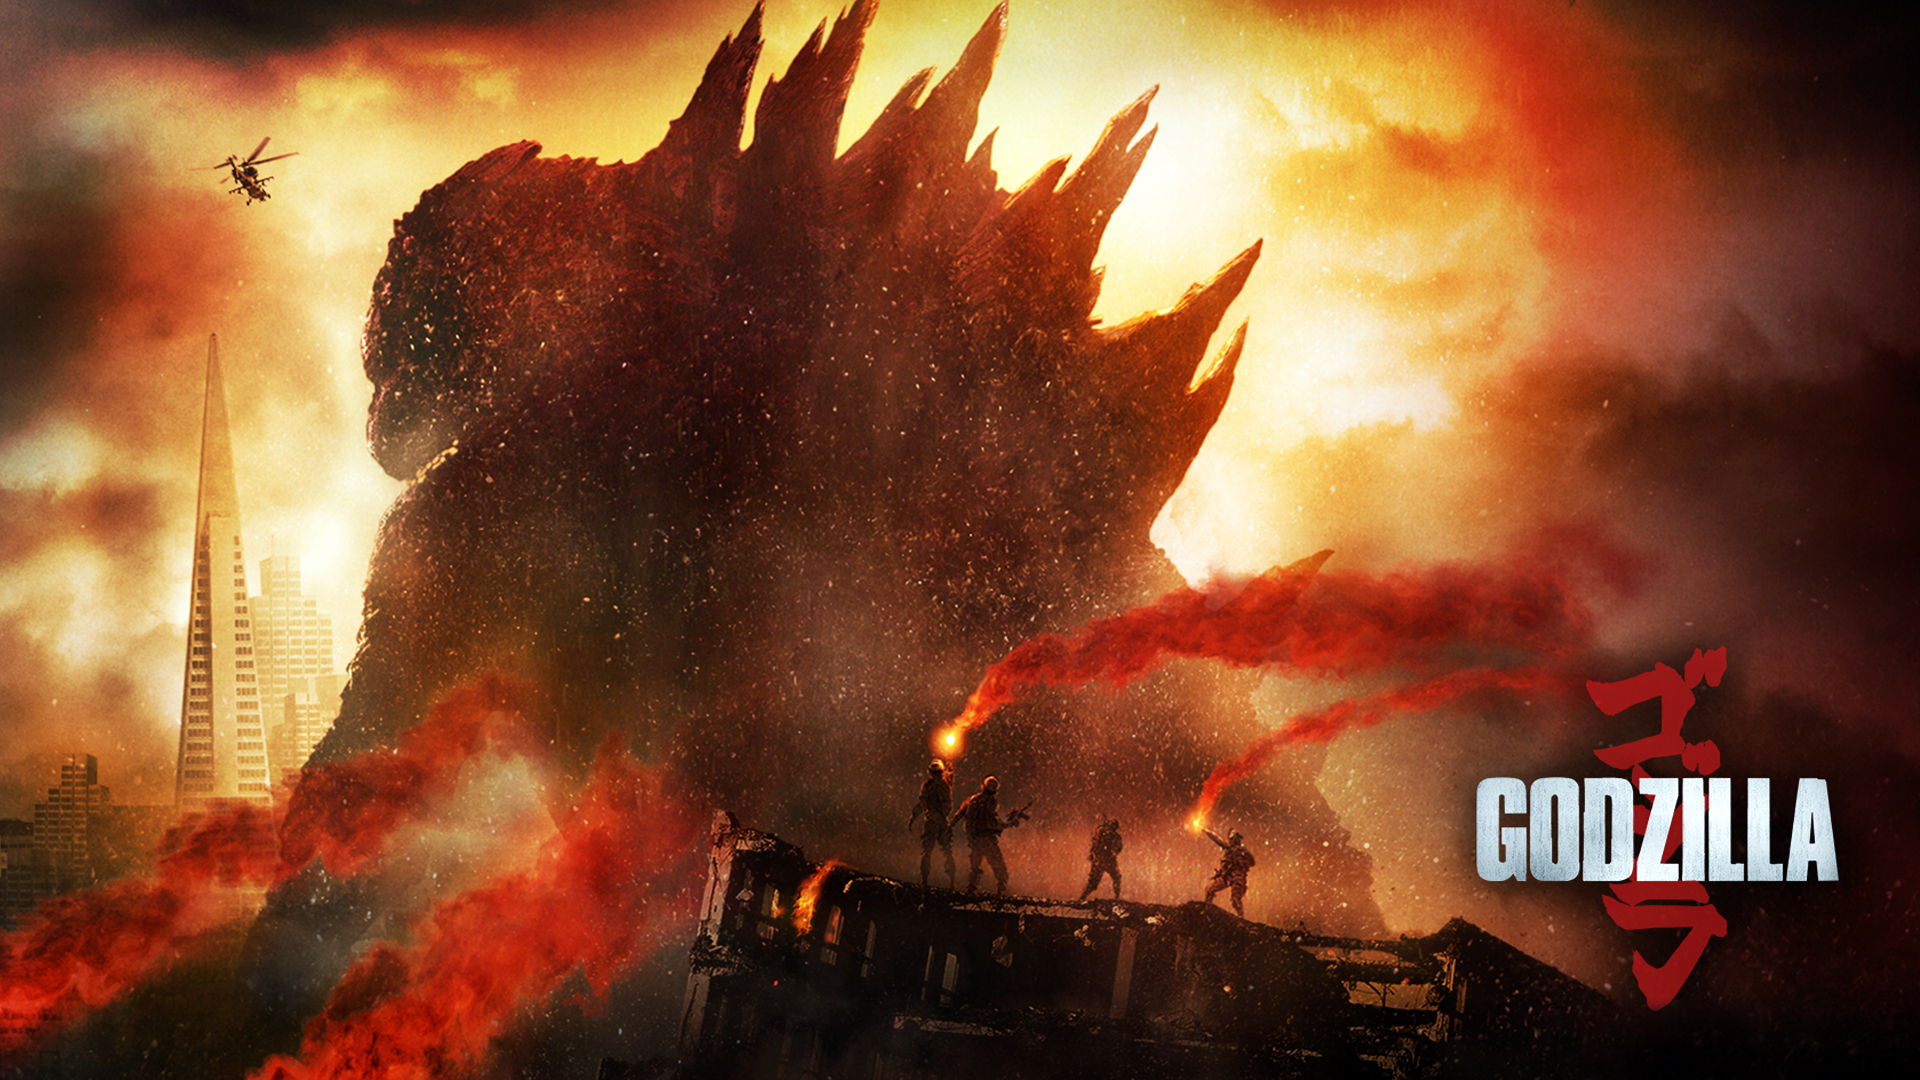 Godzilla 2014 Movie Wallpaper Godzilla Movie 2014 19...